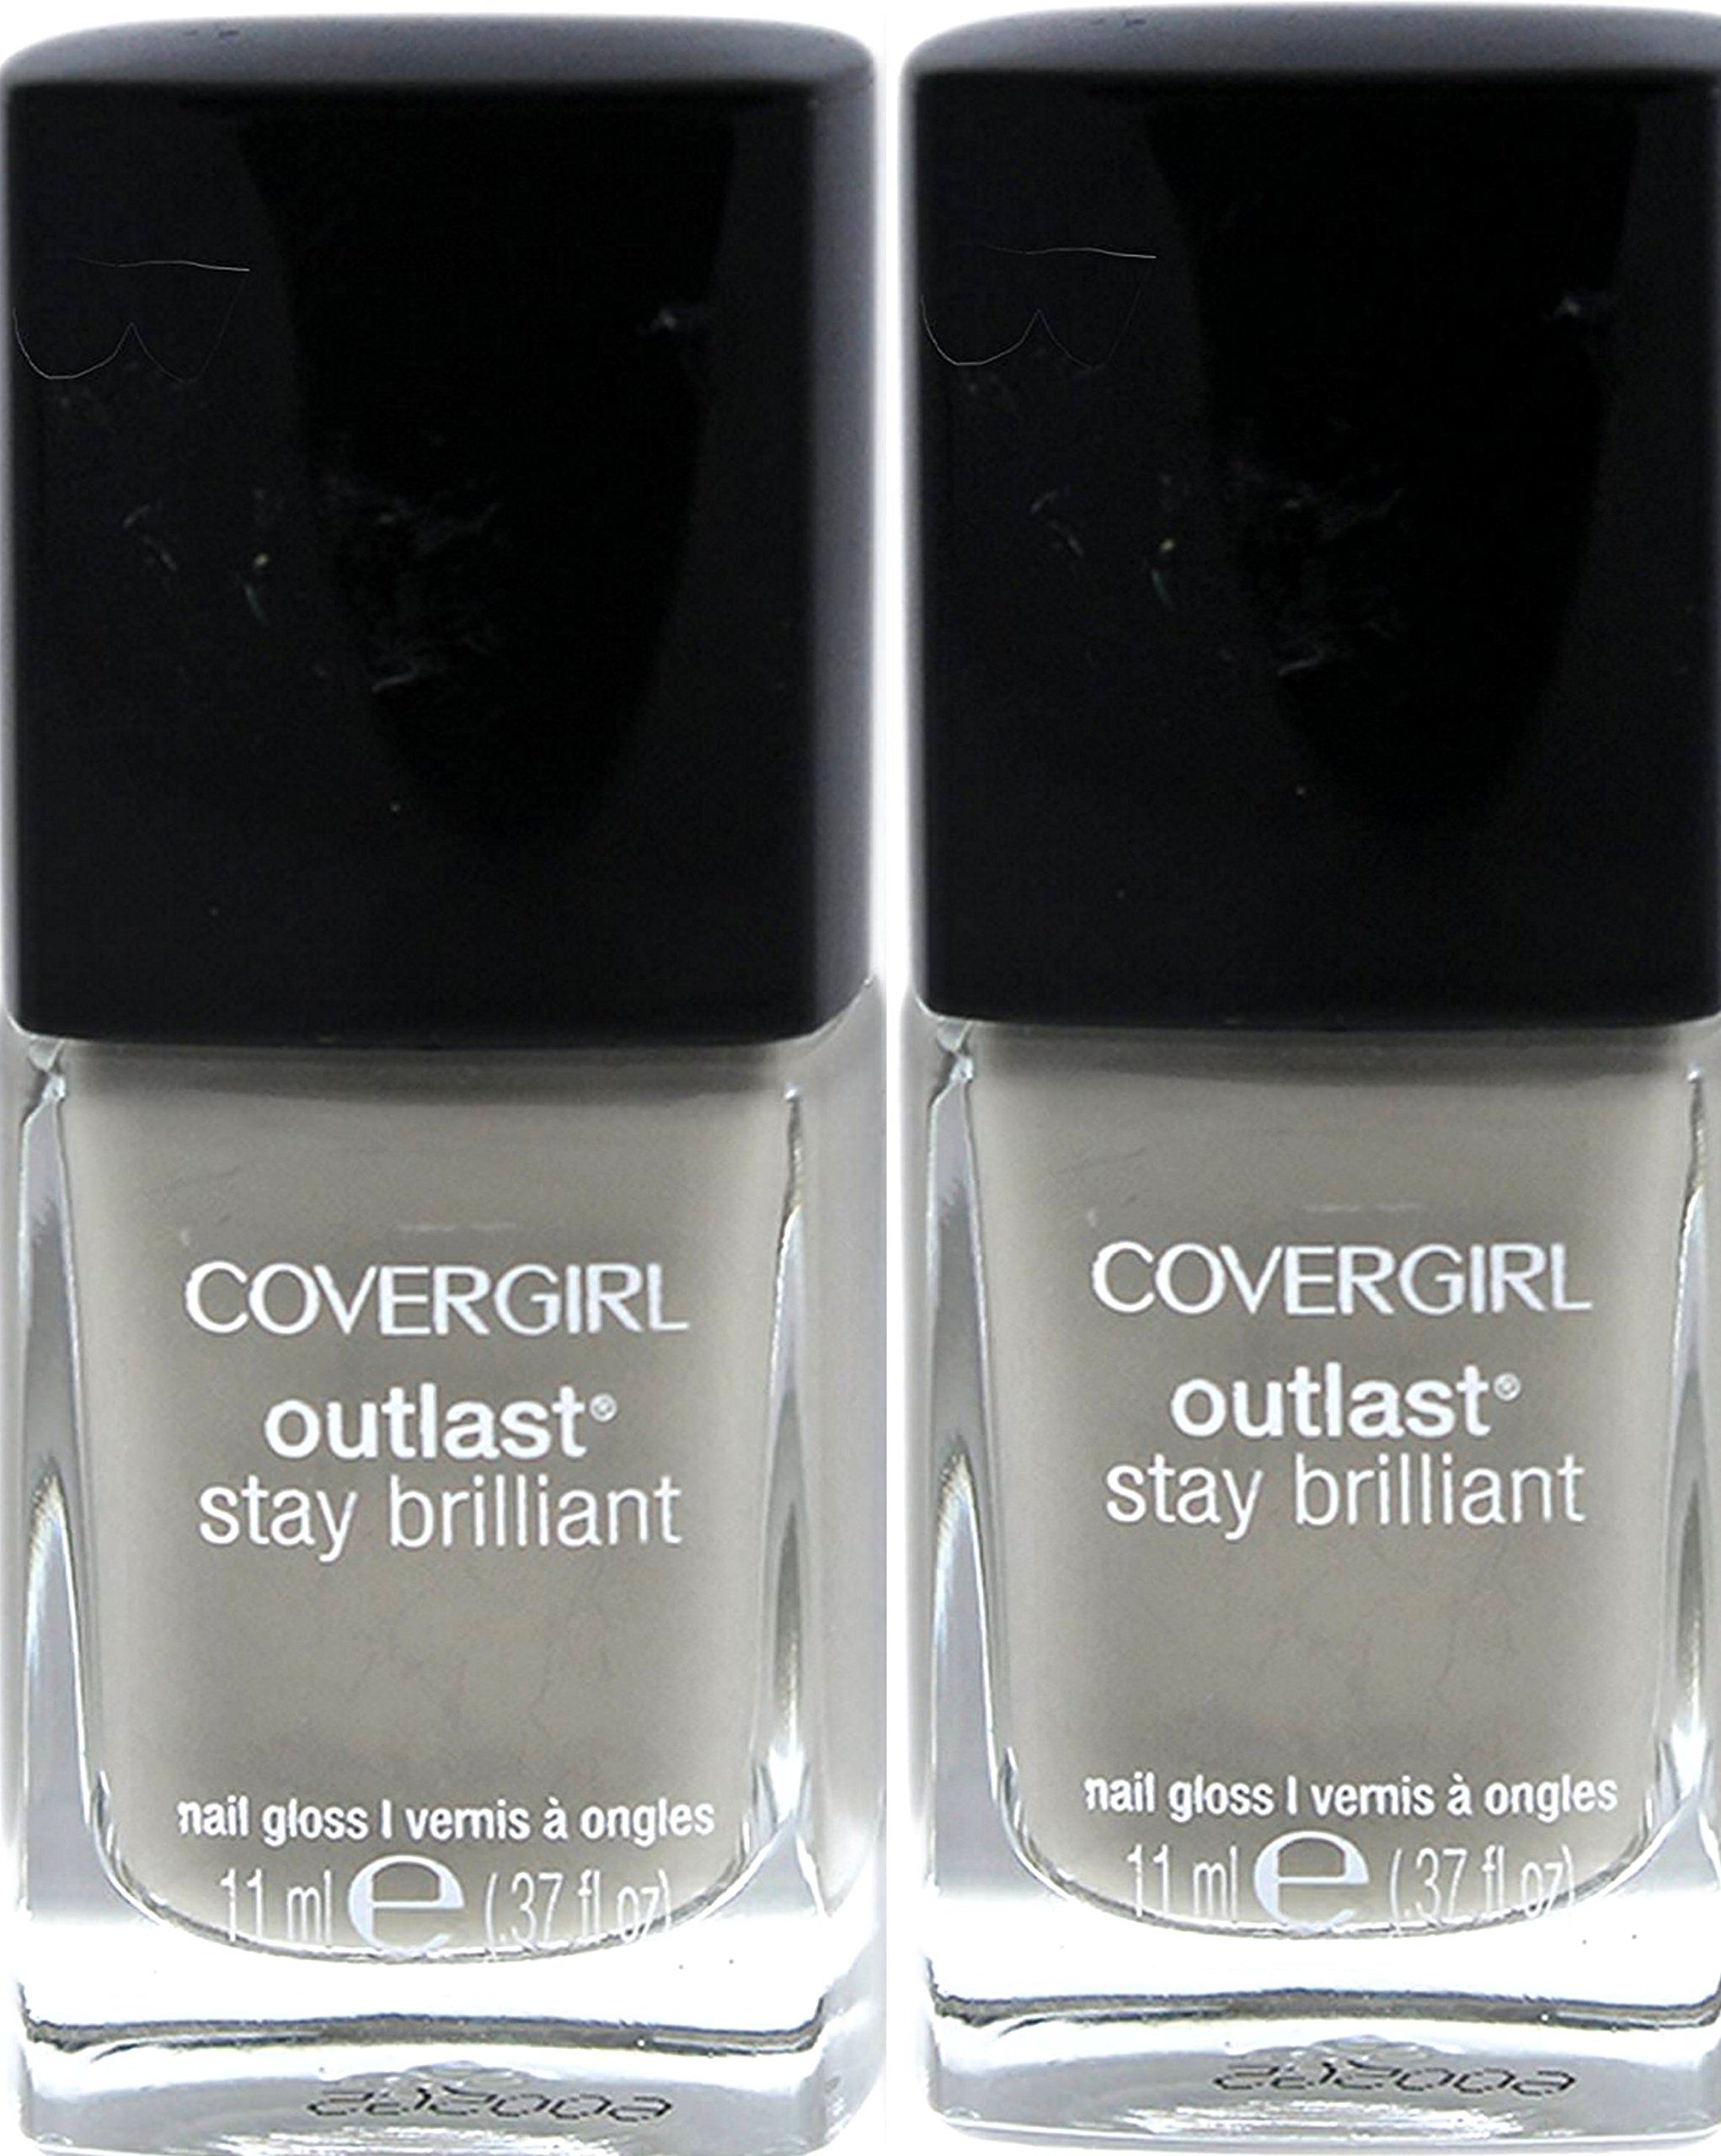 Covergirl - Covergirl STAR WARS THE FORCE AWAKENS Nail Gloss (Speed of Light 200, .37 fl oz) PACK OF 2